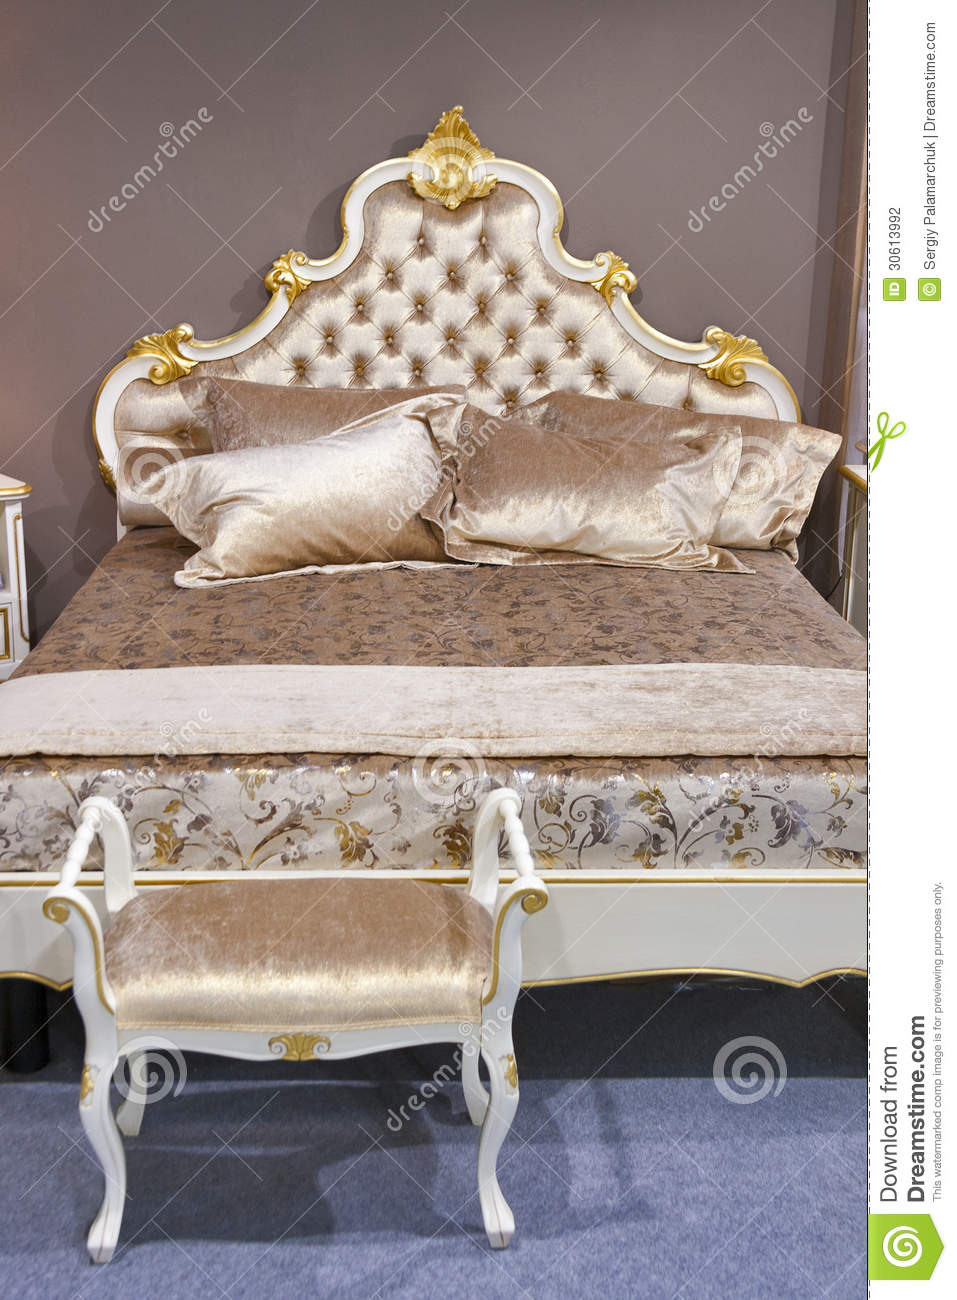 chambre coucher baroque photographie stock image 30613992. Black Bedroom Furniture Sets. Home Design Ideas